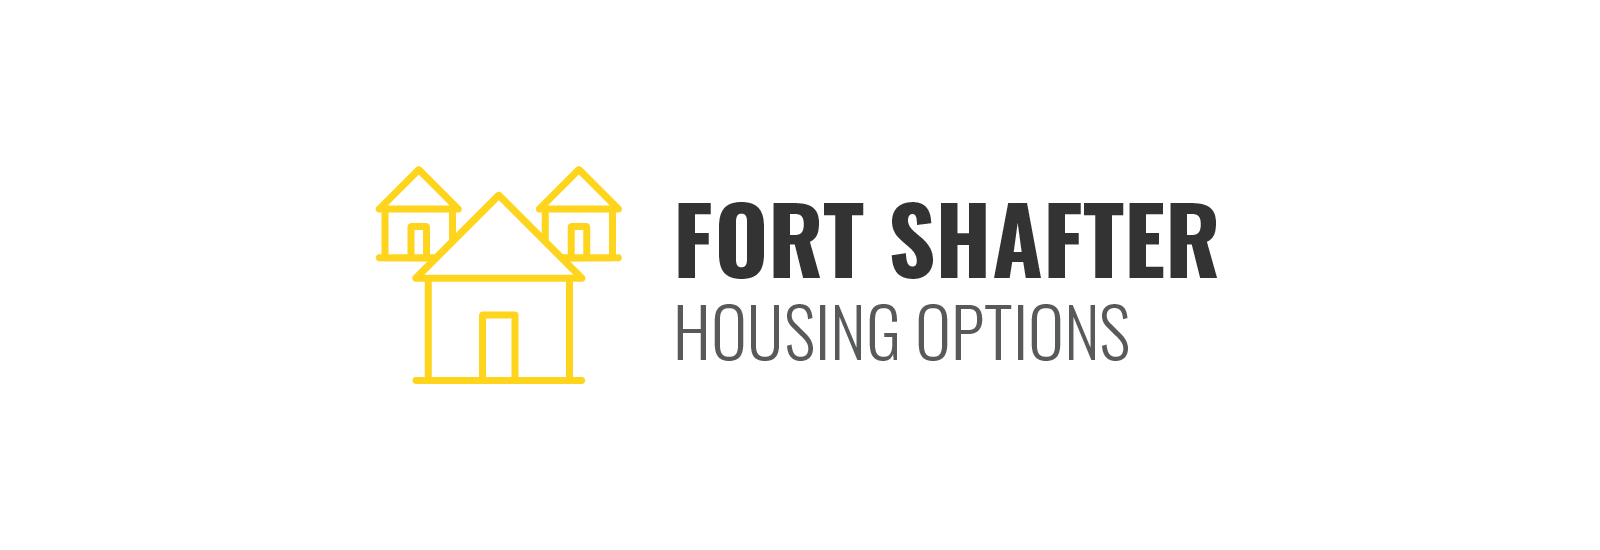 Fort Shafter Housing Options